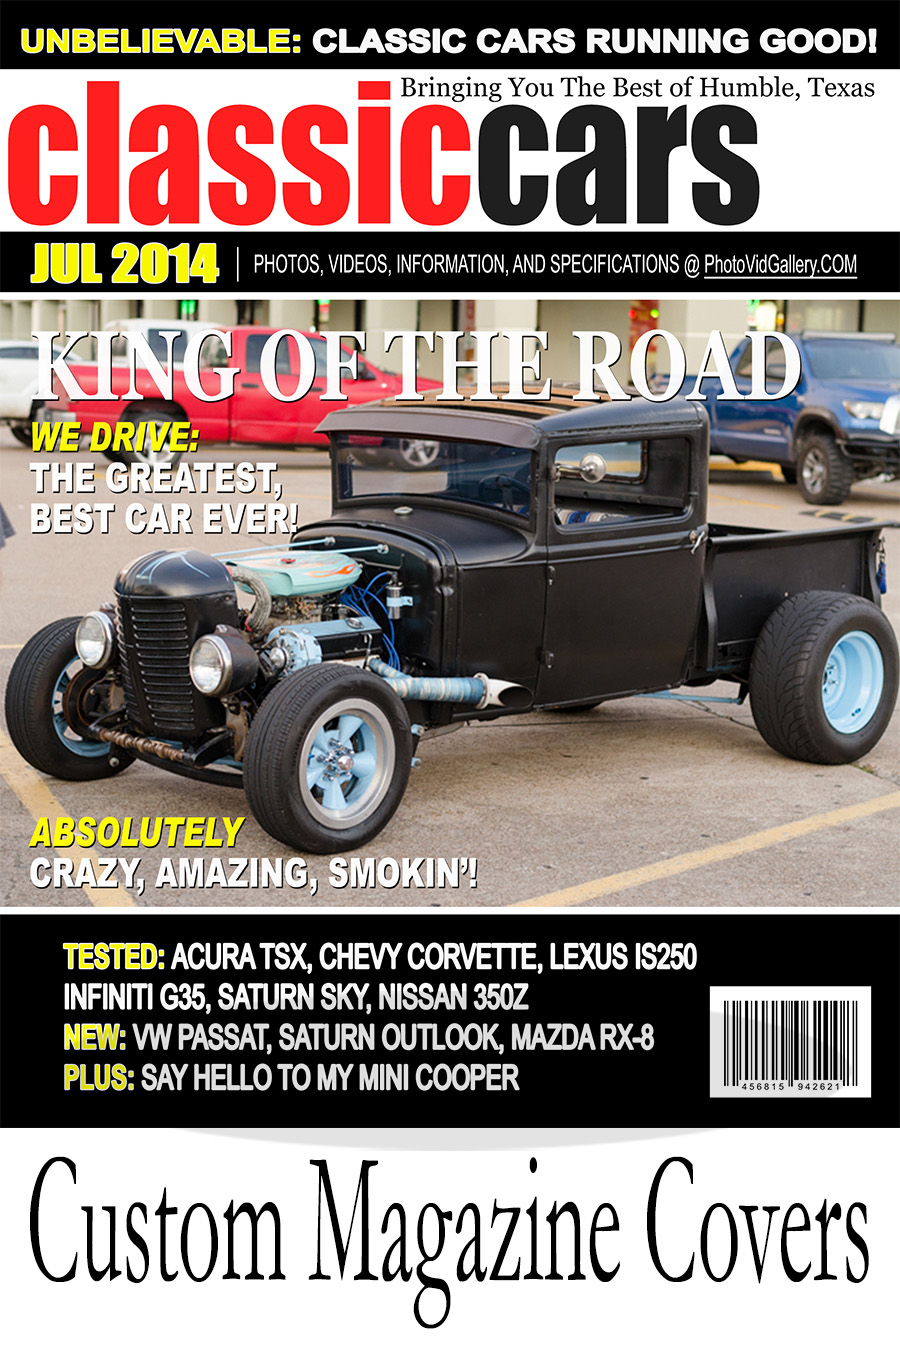 Classic Car Show Magazine Cover taken from Humble, Texas.